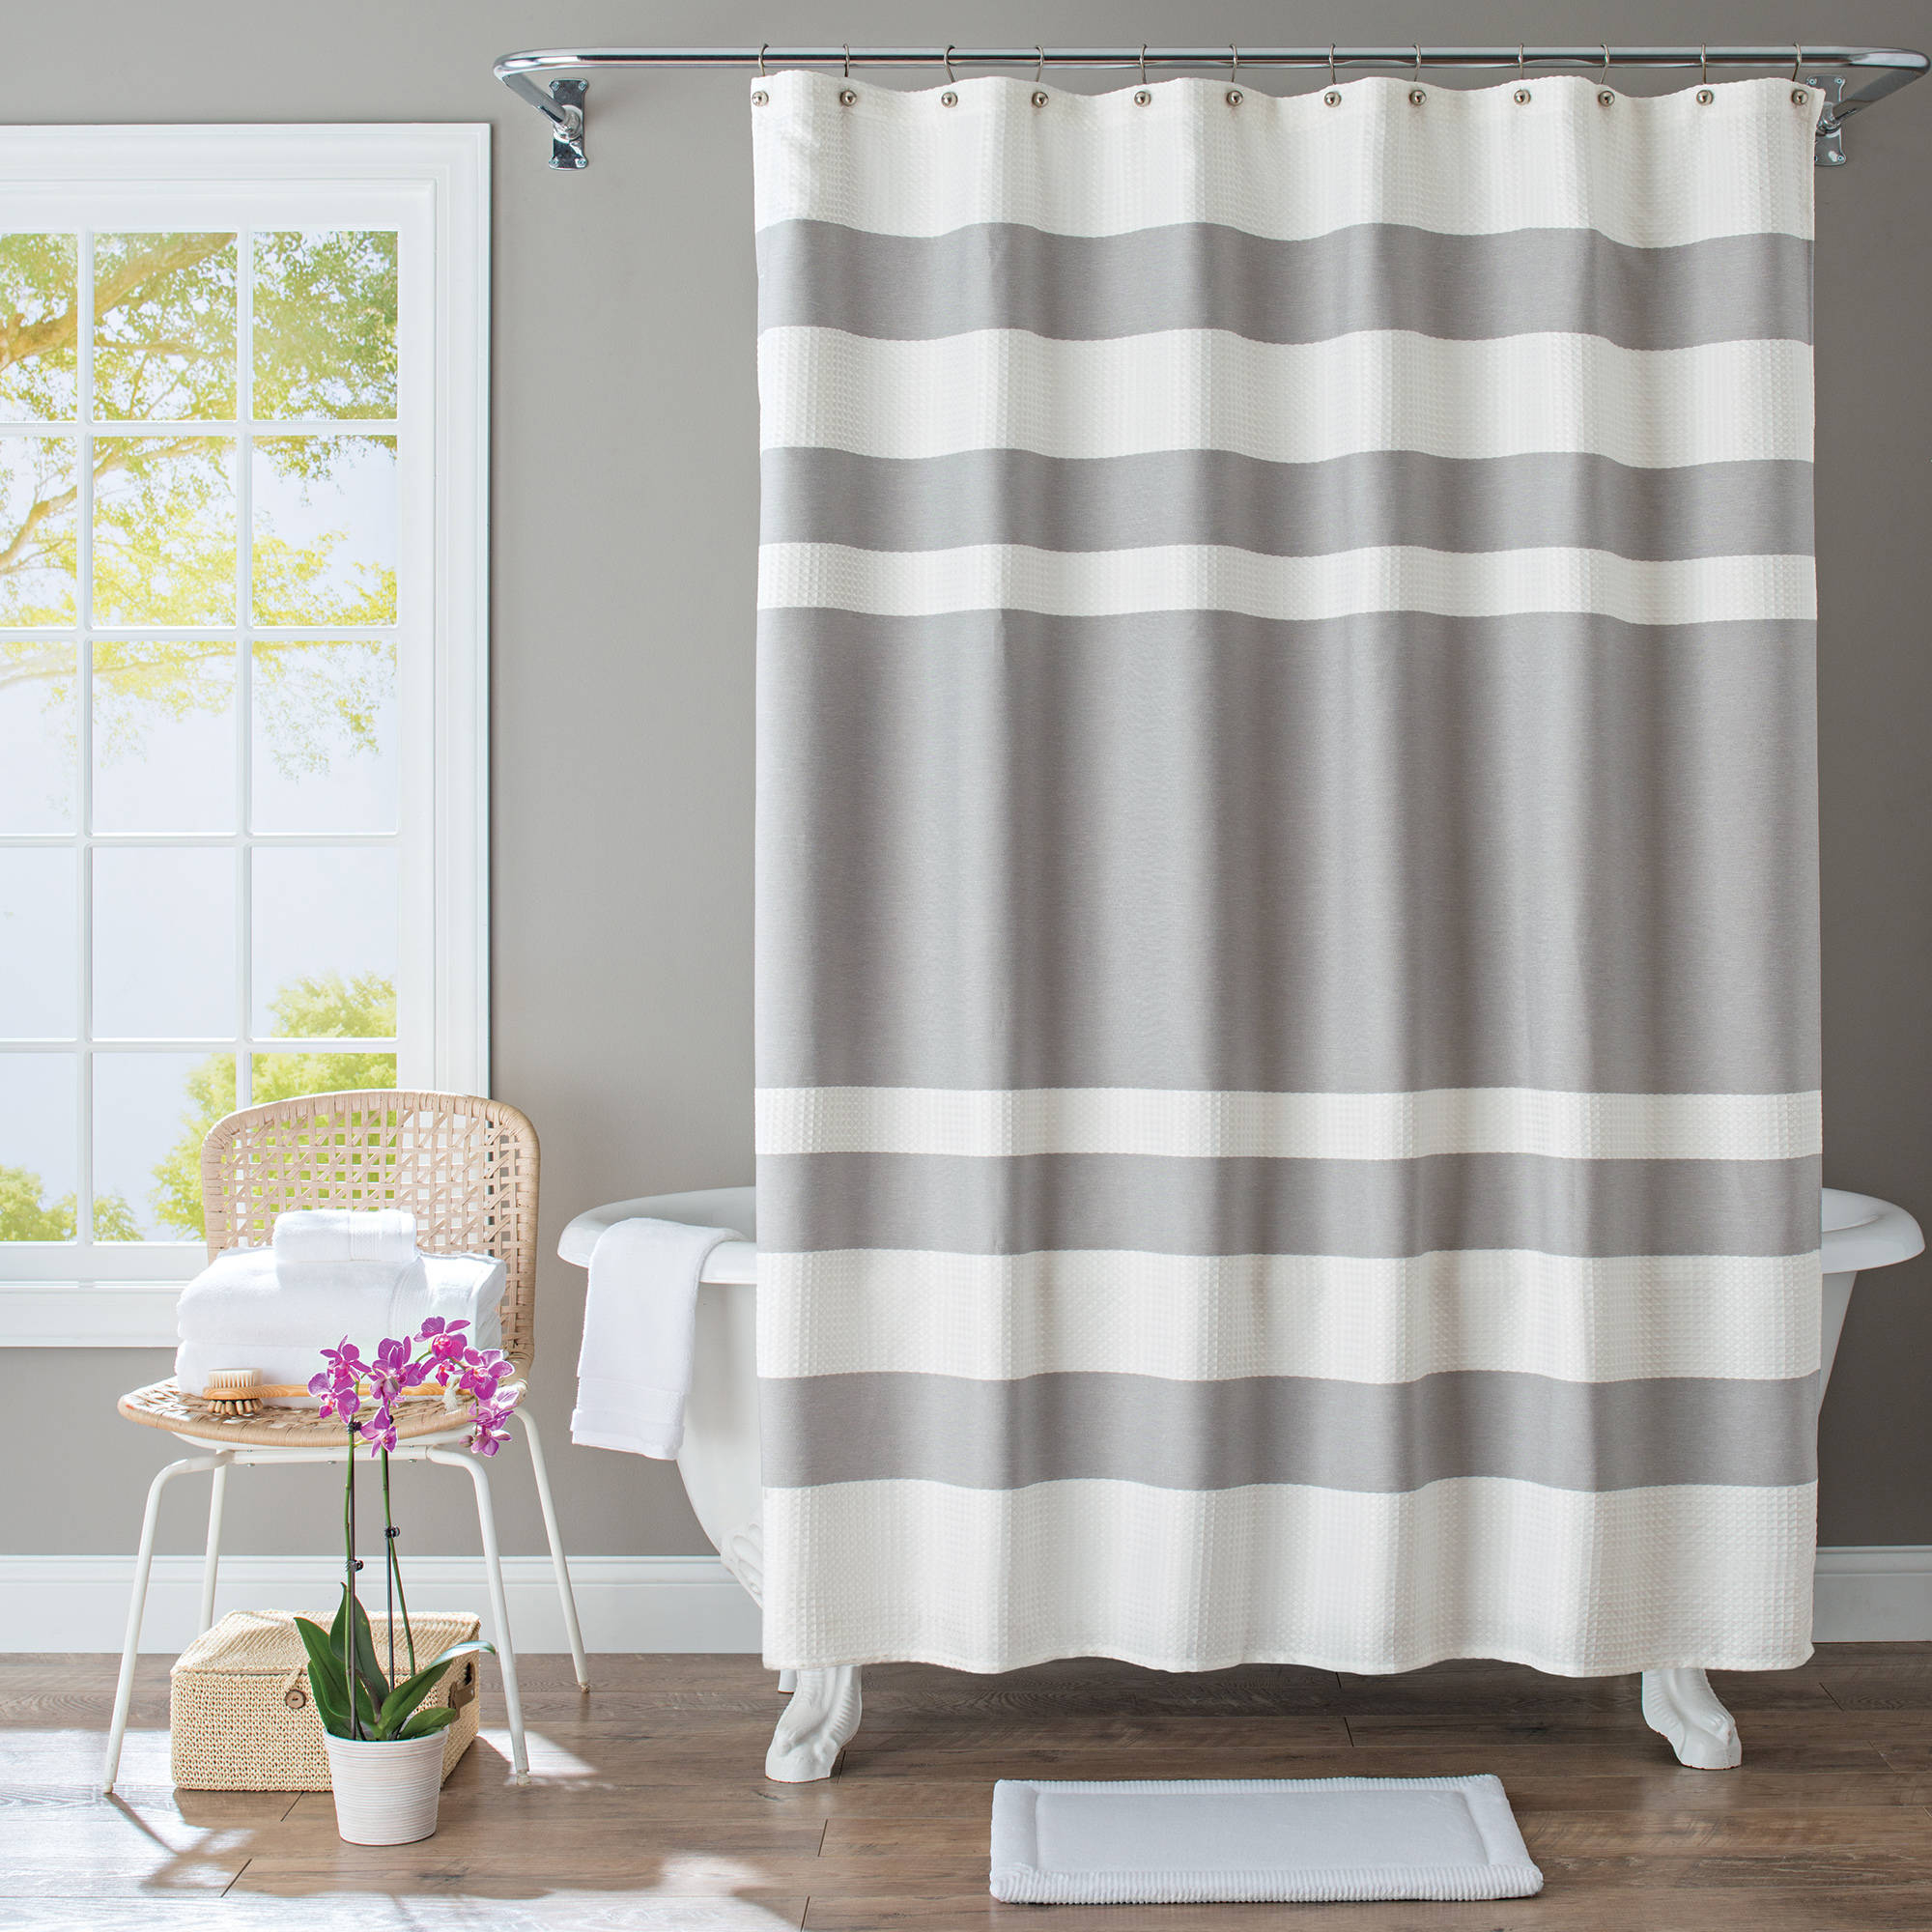 Fabric Shower Curtains Ideas For Every Bathroom Inhabit Zone throughout dimensions 2000 X 2000